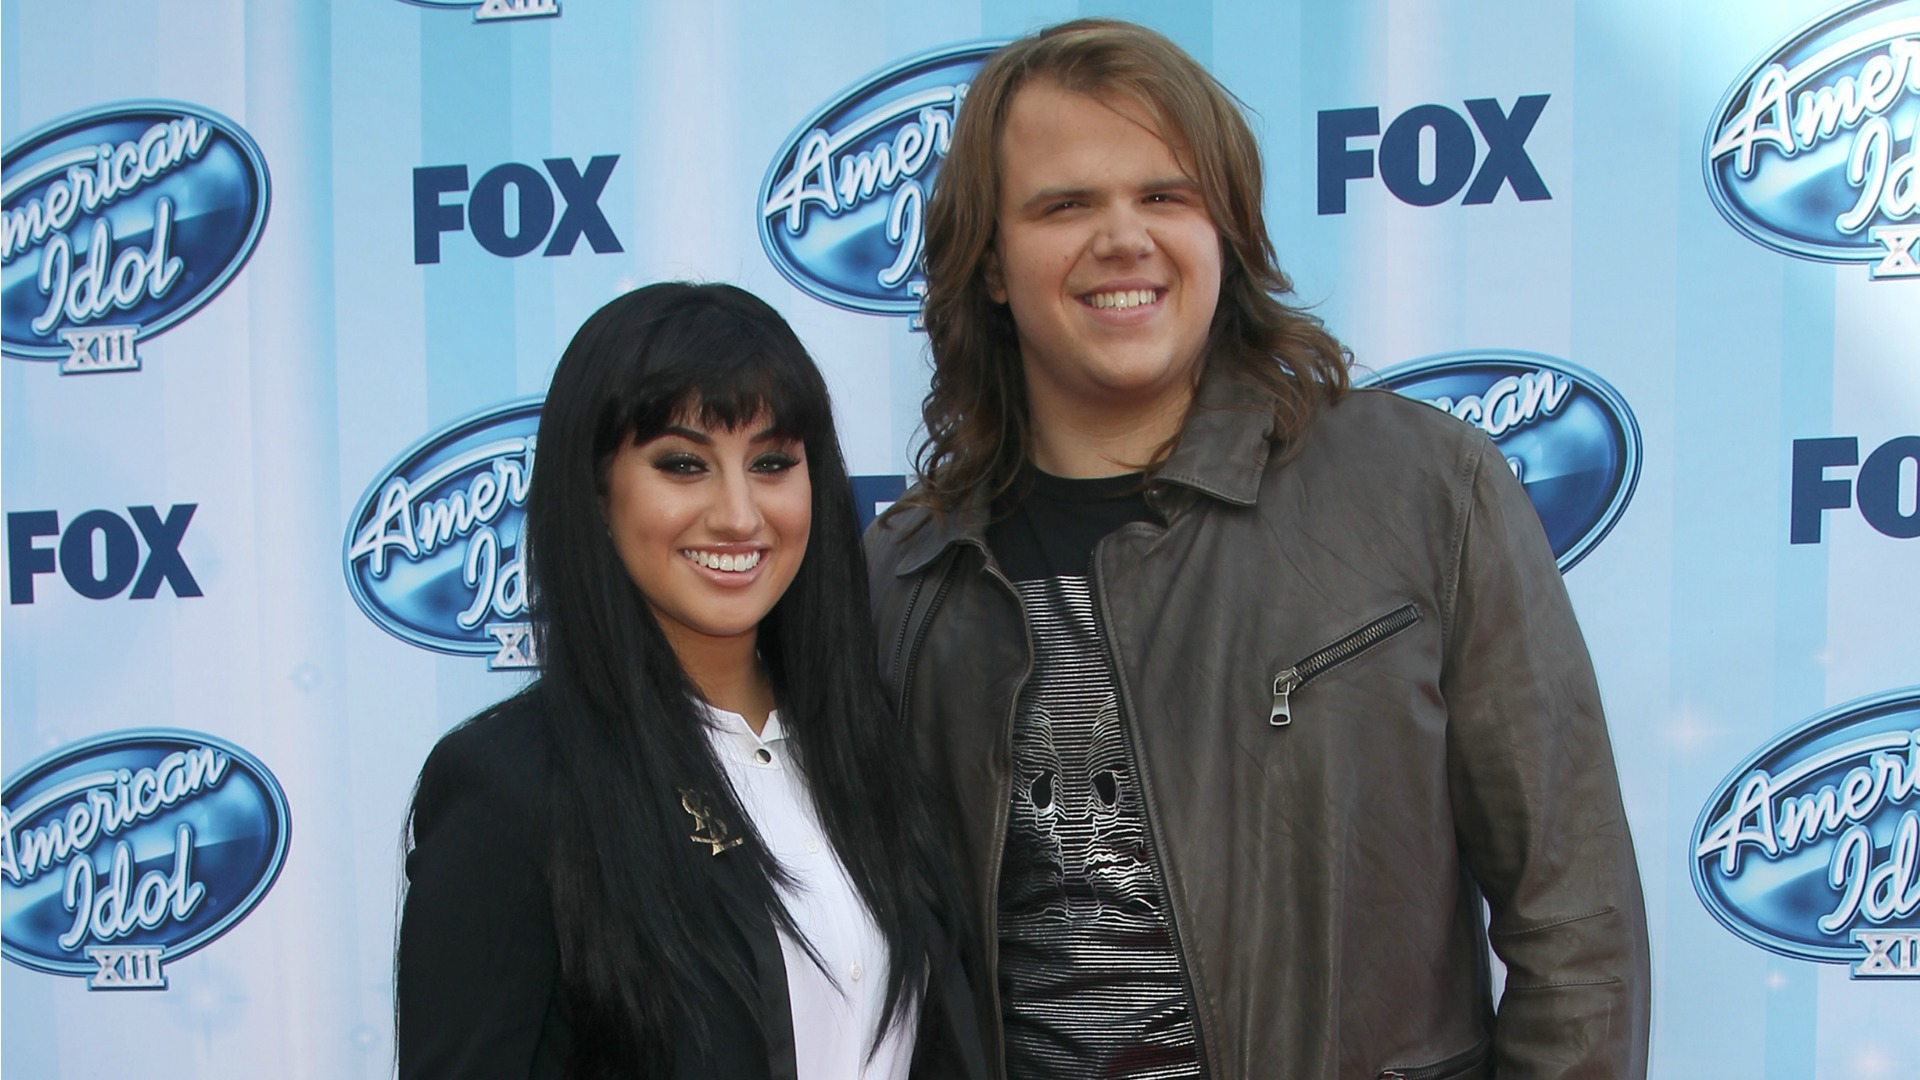 American Idol Season 13 Winner